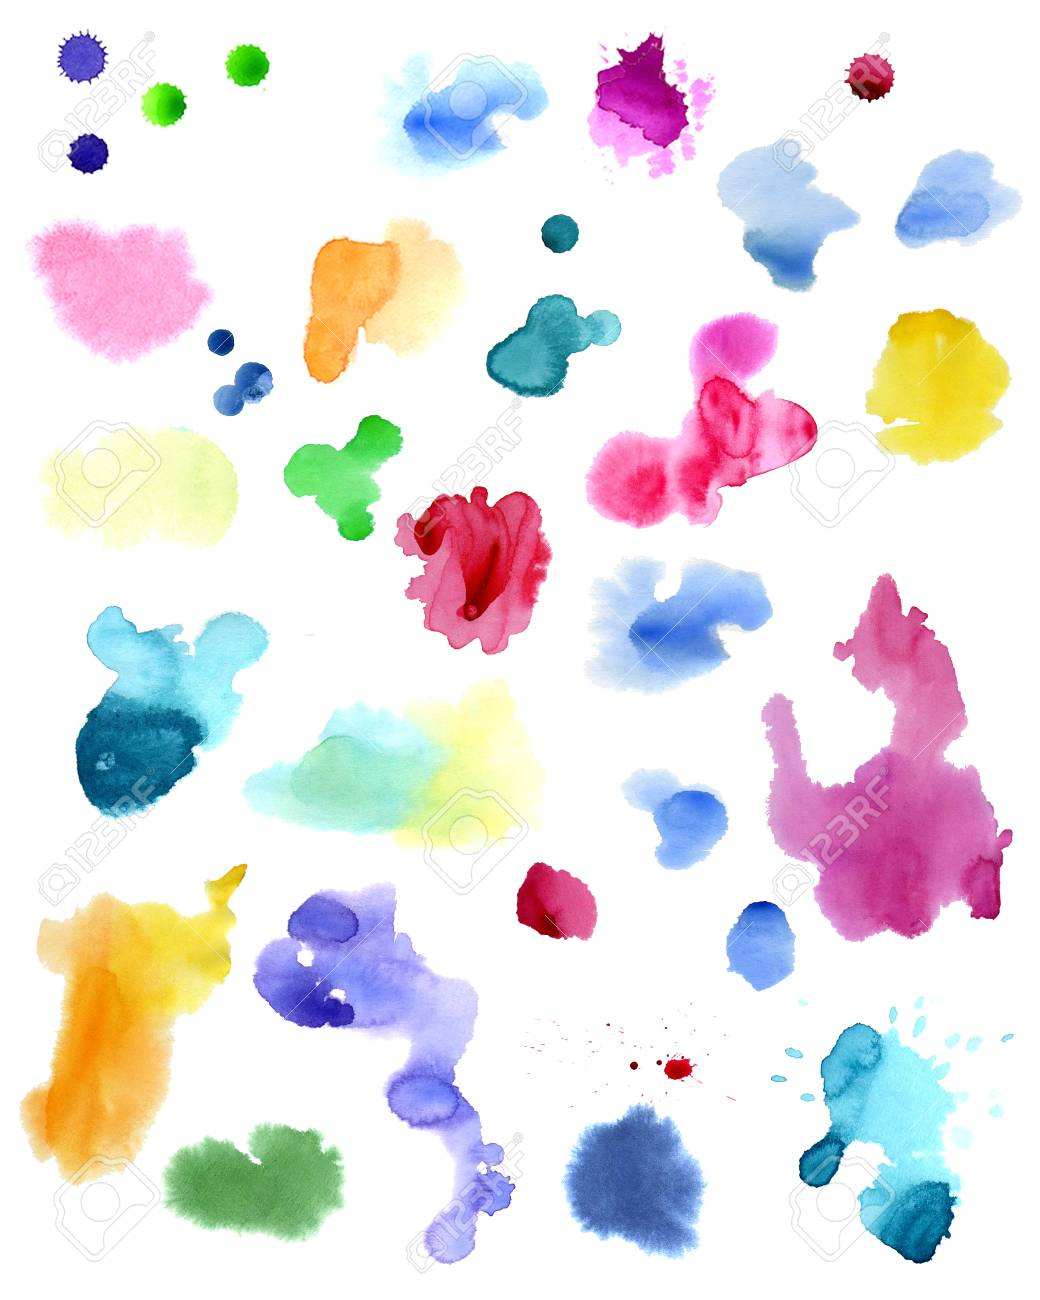 Watercolor splashes isolated on white background. Hand drawn illustration. Abstract colorful shapes. - 63721265